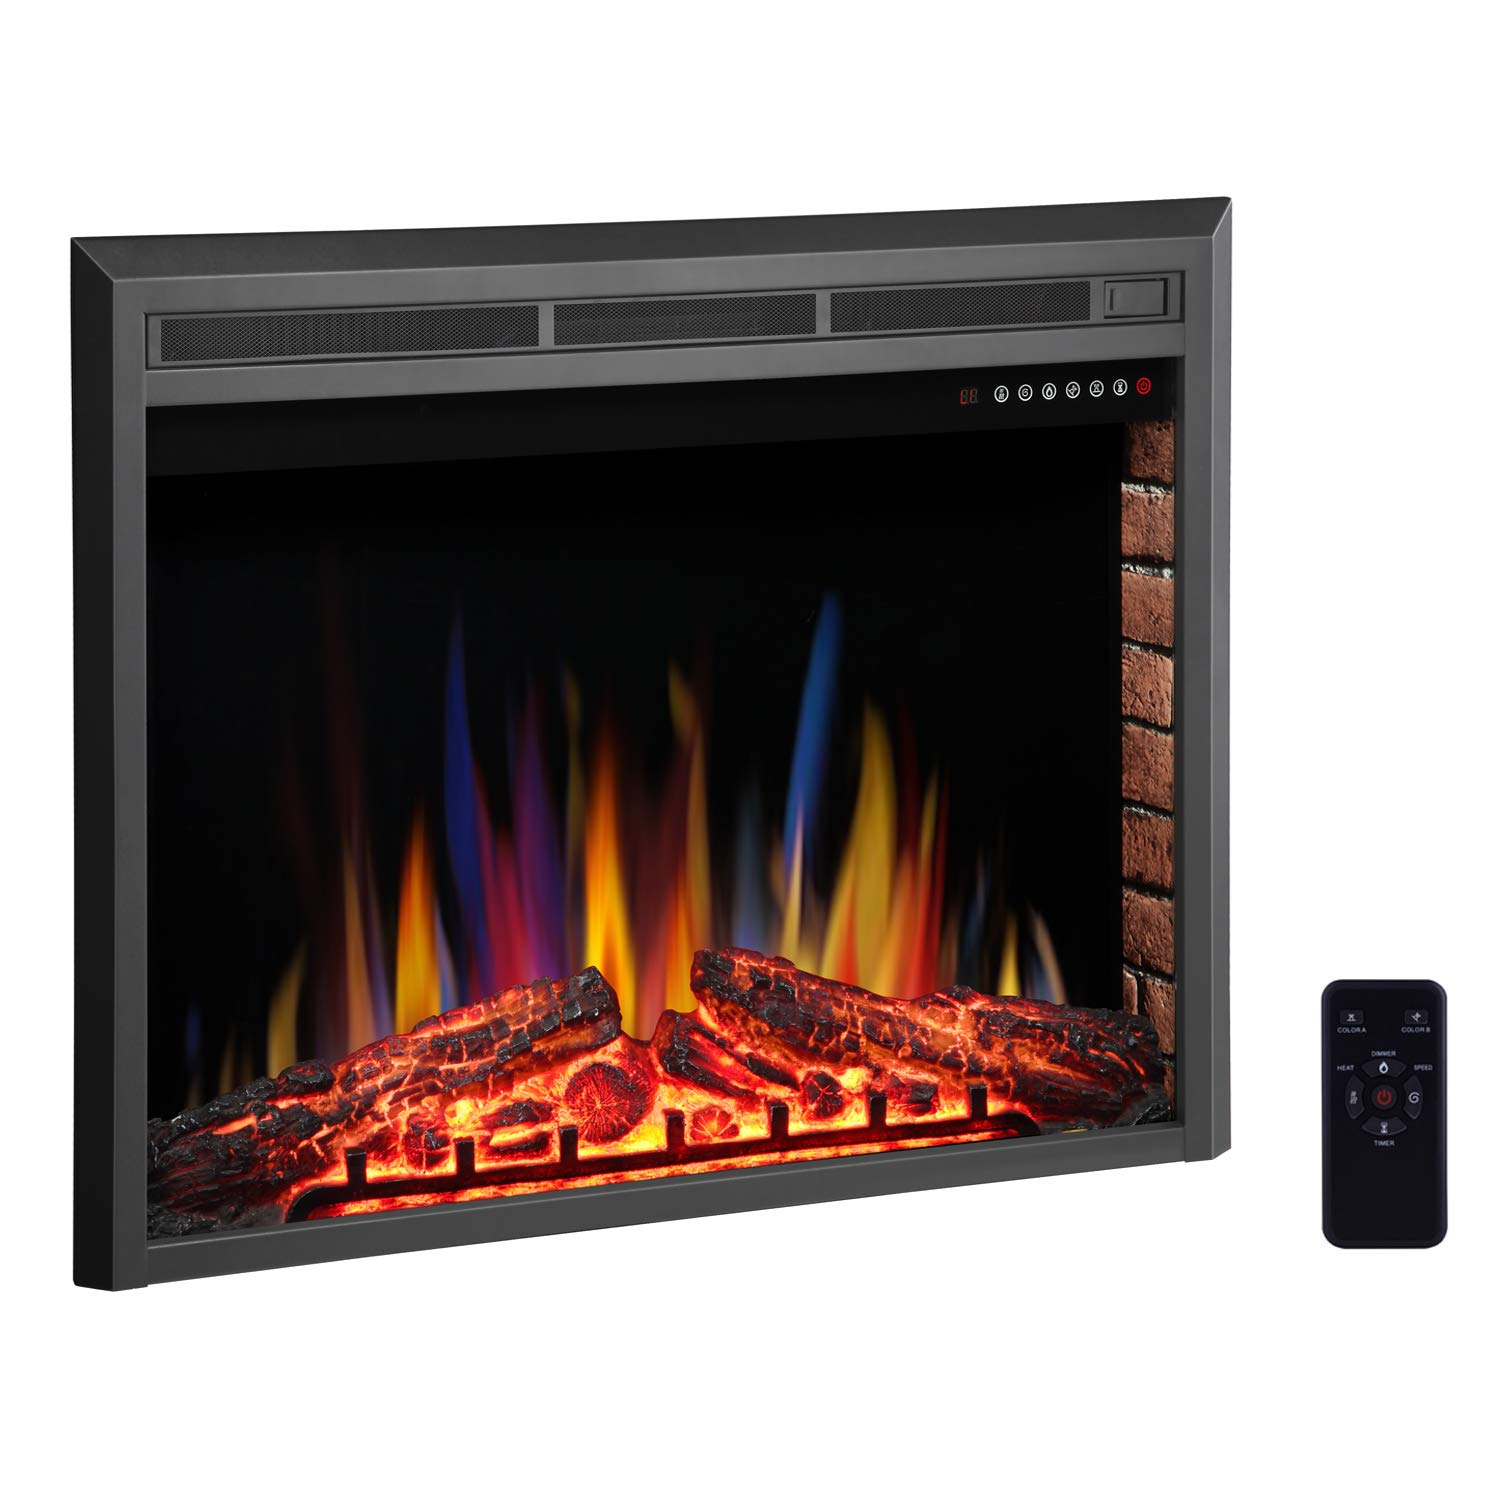 R.W.FLAME 39'' Electric Fireplace Insert,Freestanding & Recessed Electric Stove Heater,Touch Screen,Remote Control,750W-1500W with Timer & Colorful Flame Option by R.W.FLAME